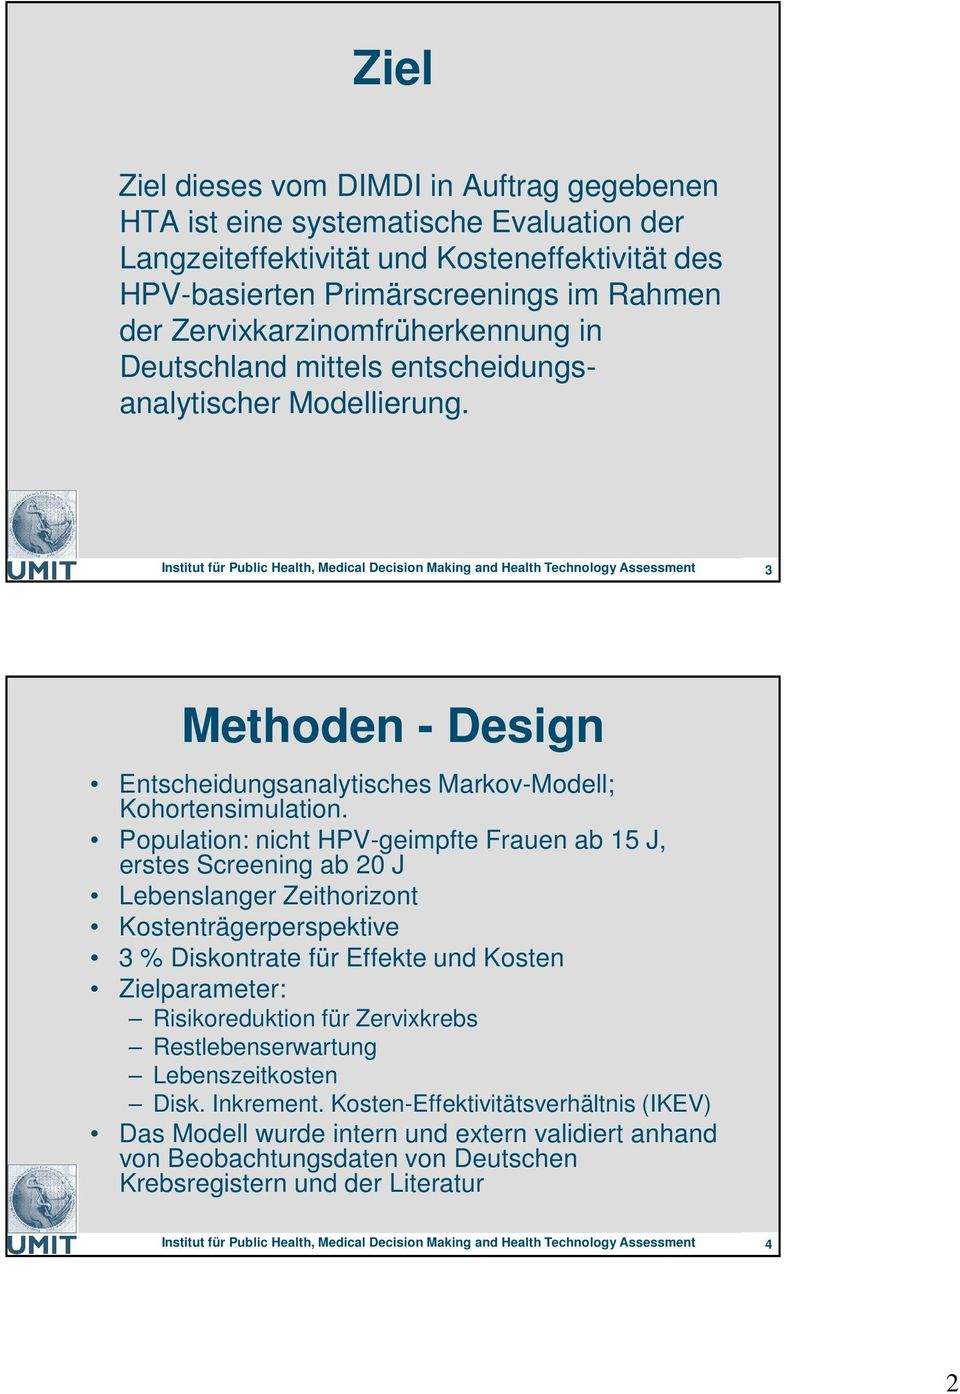 Institut für Public Health, Medical Decision Making and Health Technology Assessment 3 Methoden - Design Entscheidungsanalytisches Markov-Modell; Kohortensimulation.